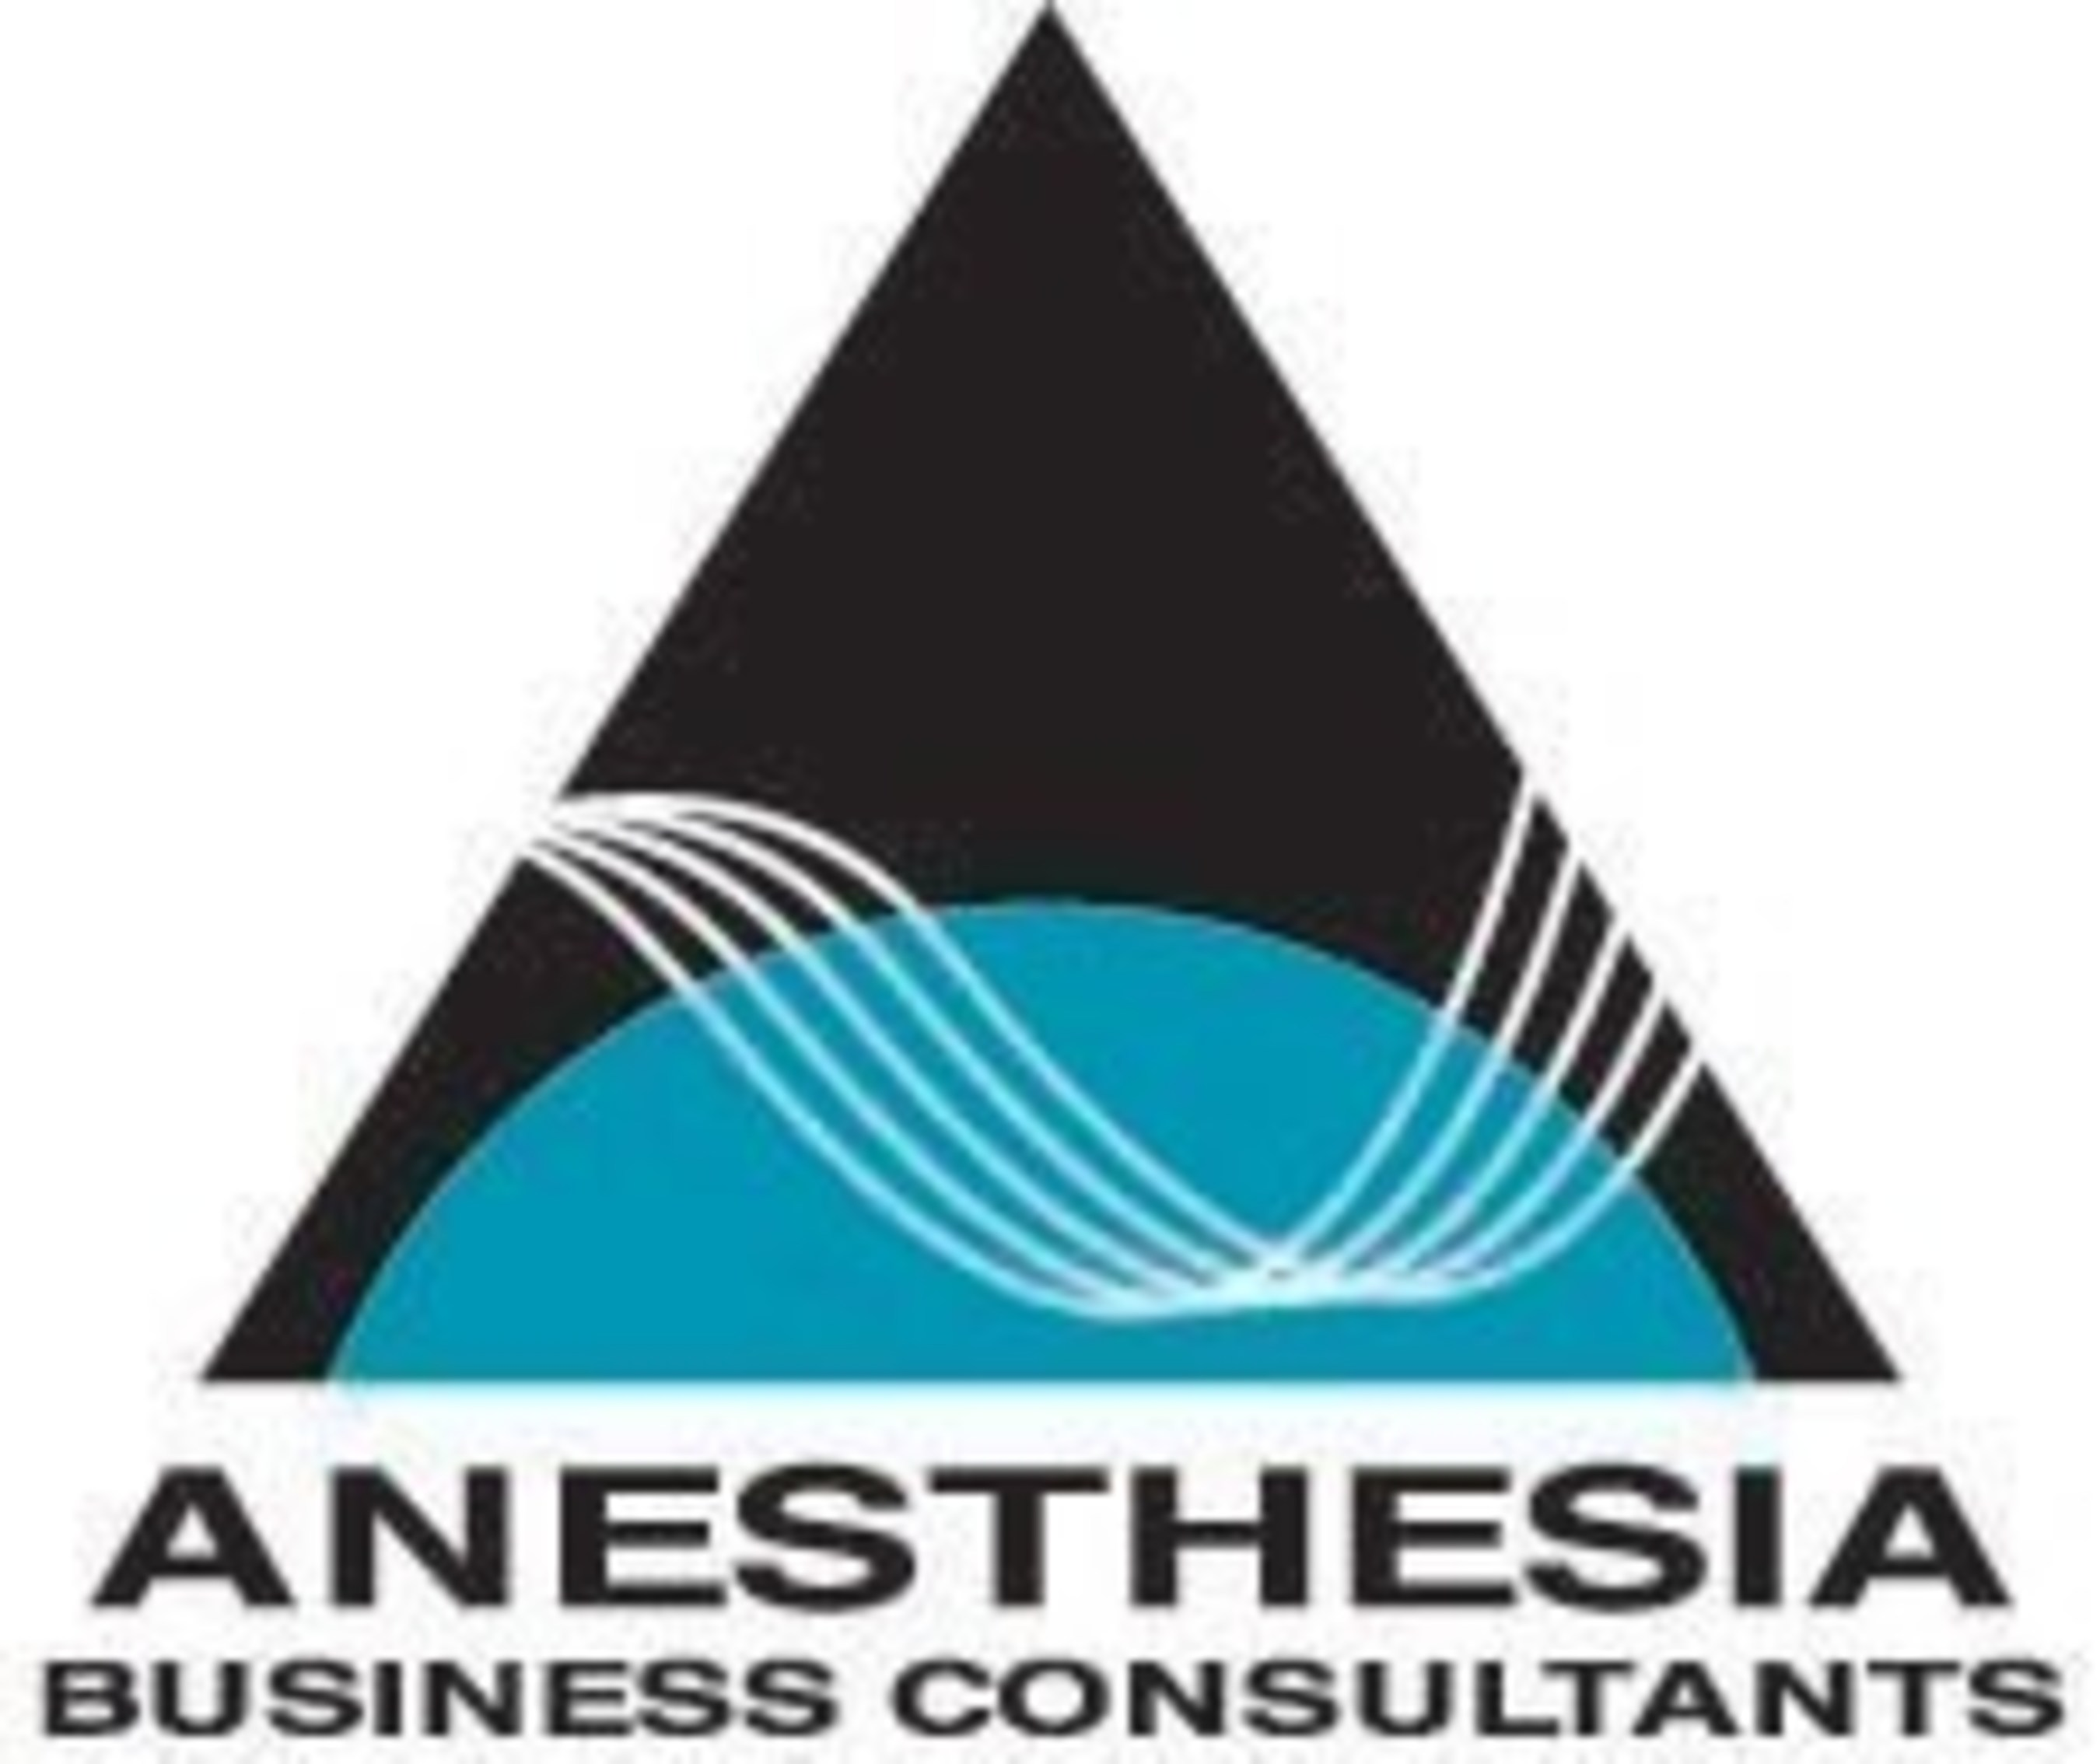 Anesthesia Business Consultants To Offer Comprehensive And